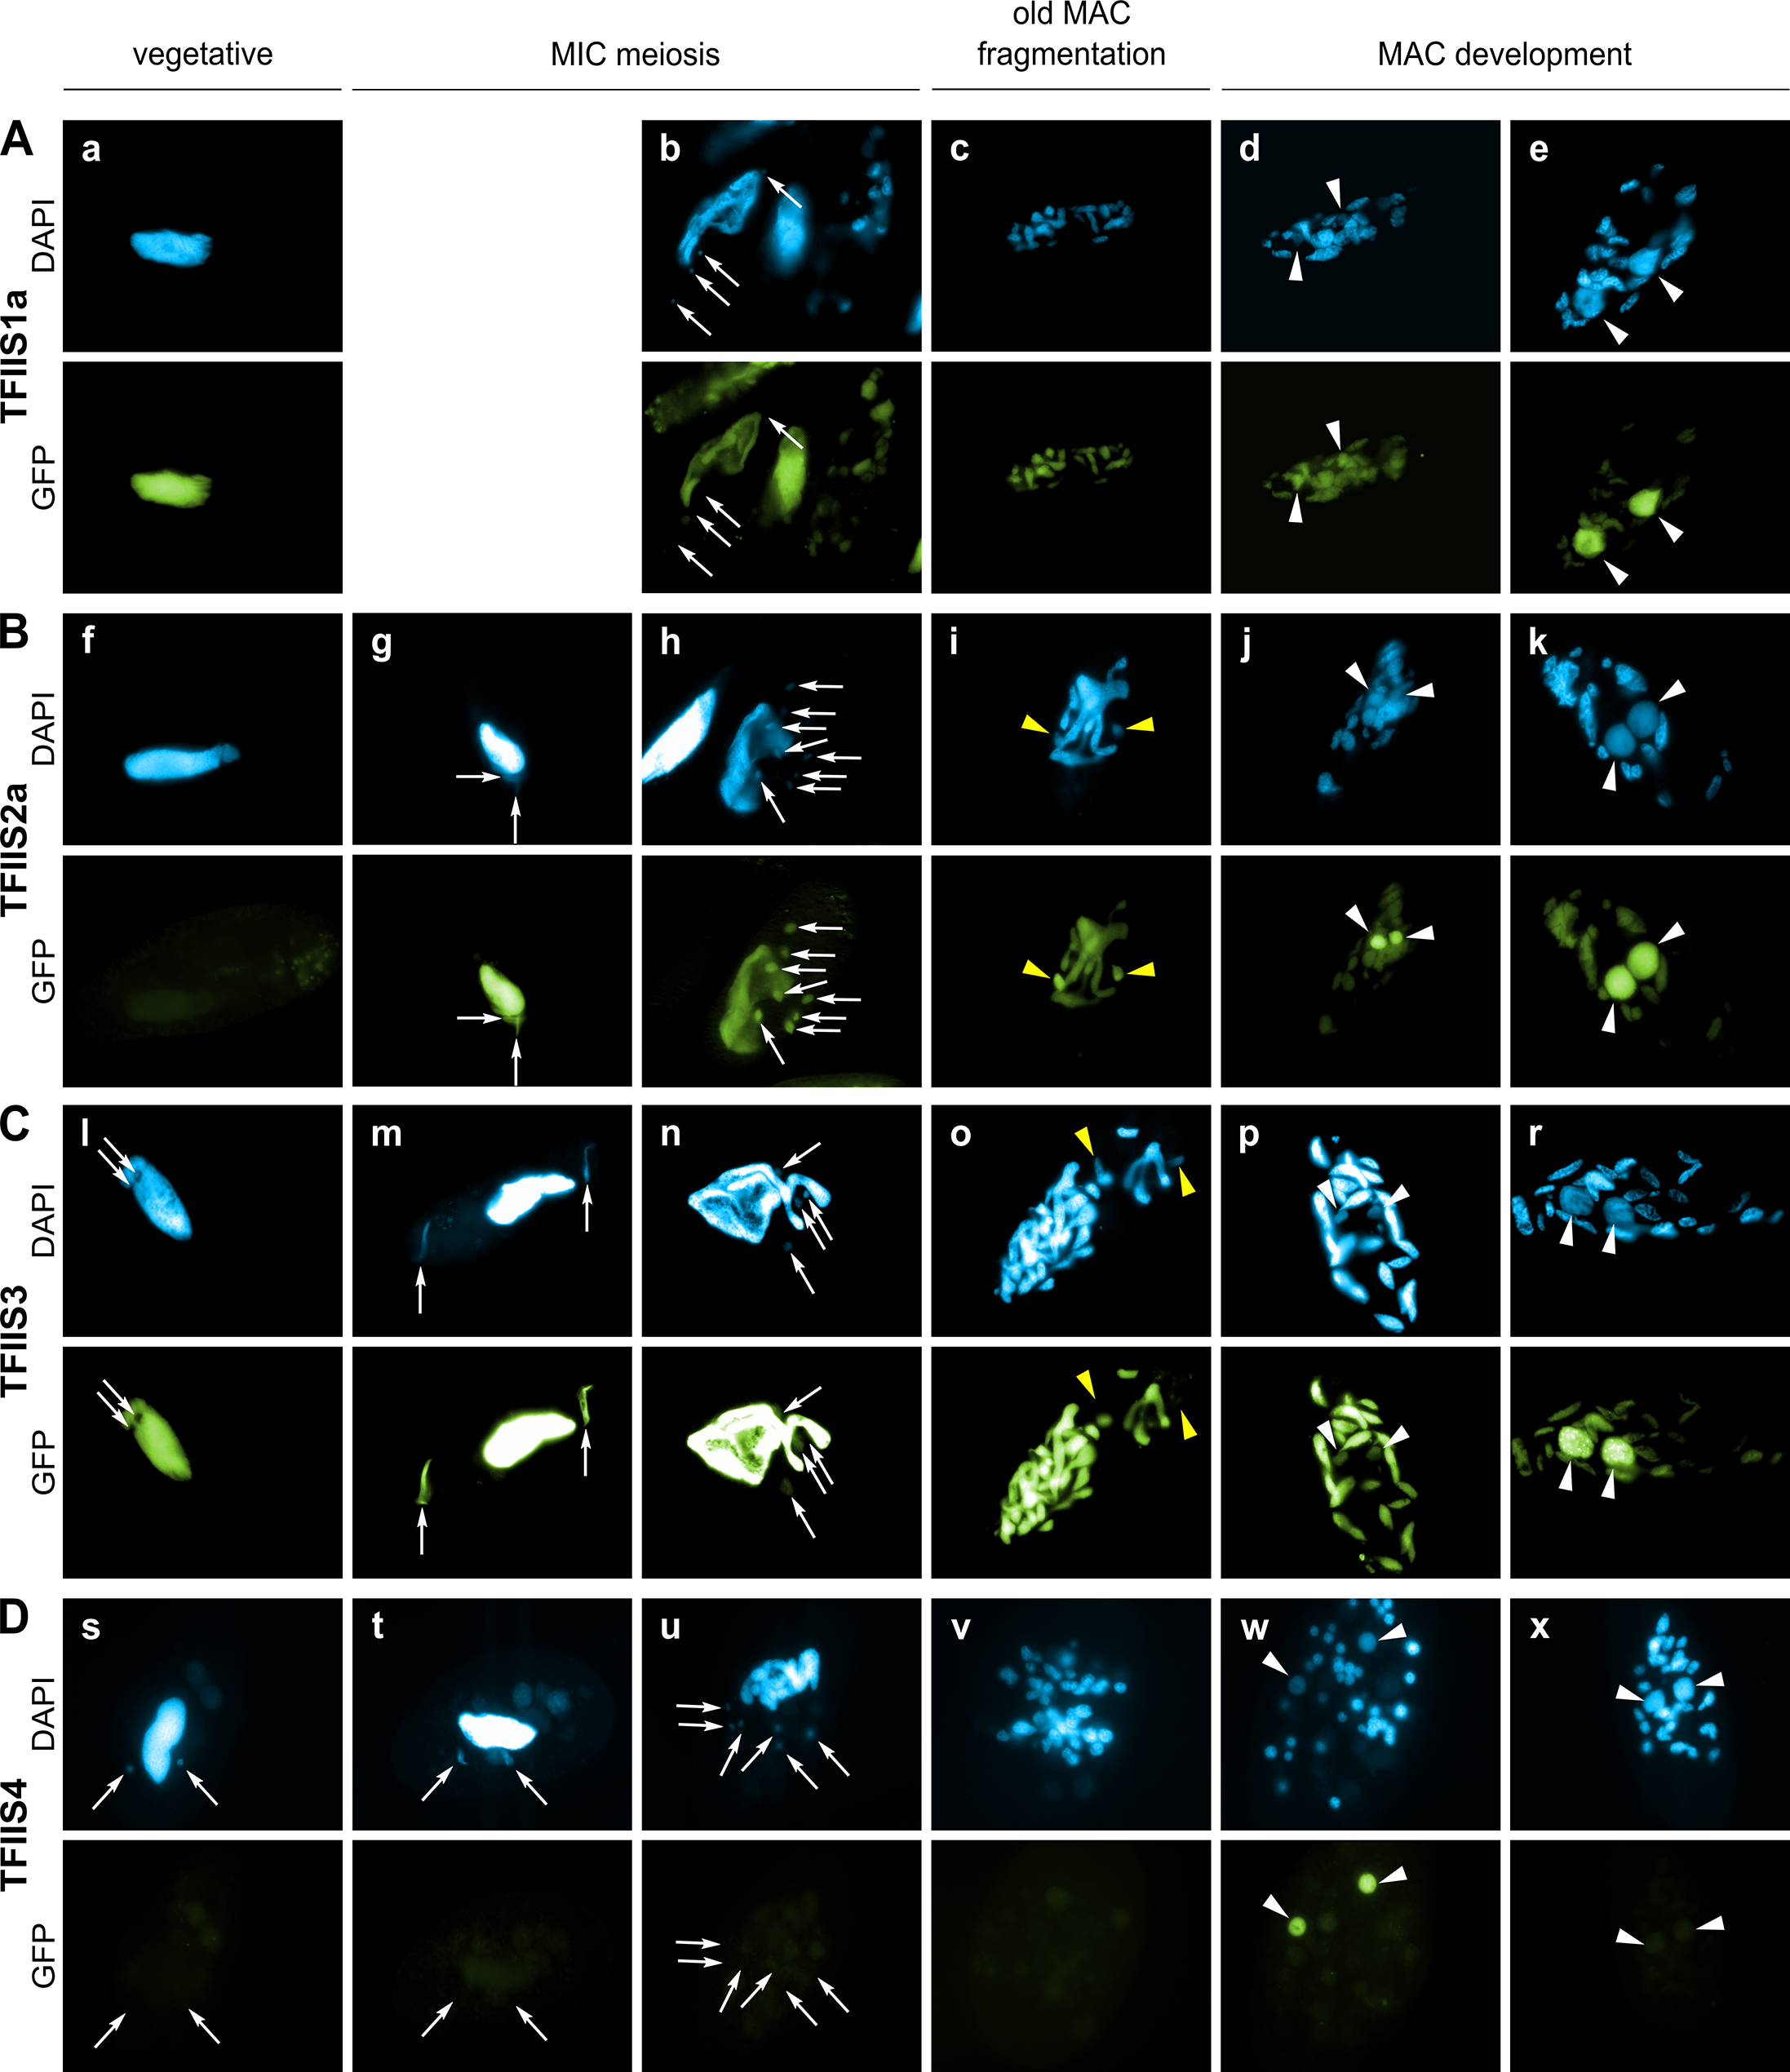 Localization of GFP fusion proteins forTFIIS1a, TFIIS2a, TFIIS3 and TFIIS4.